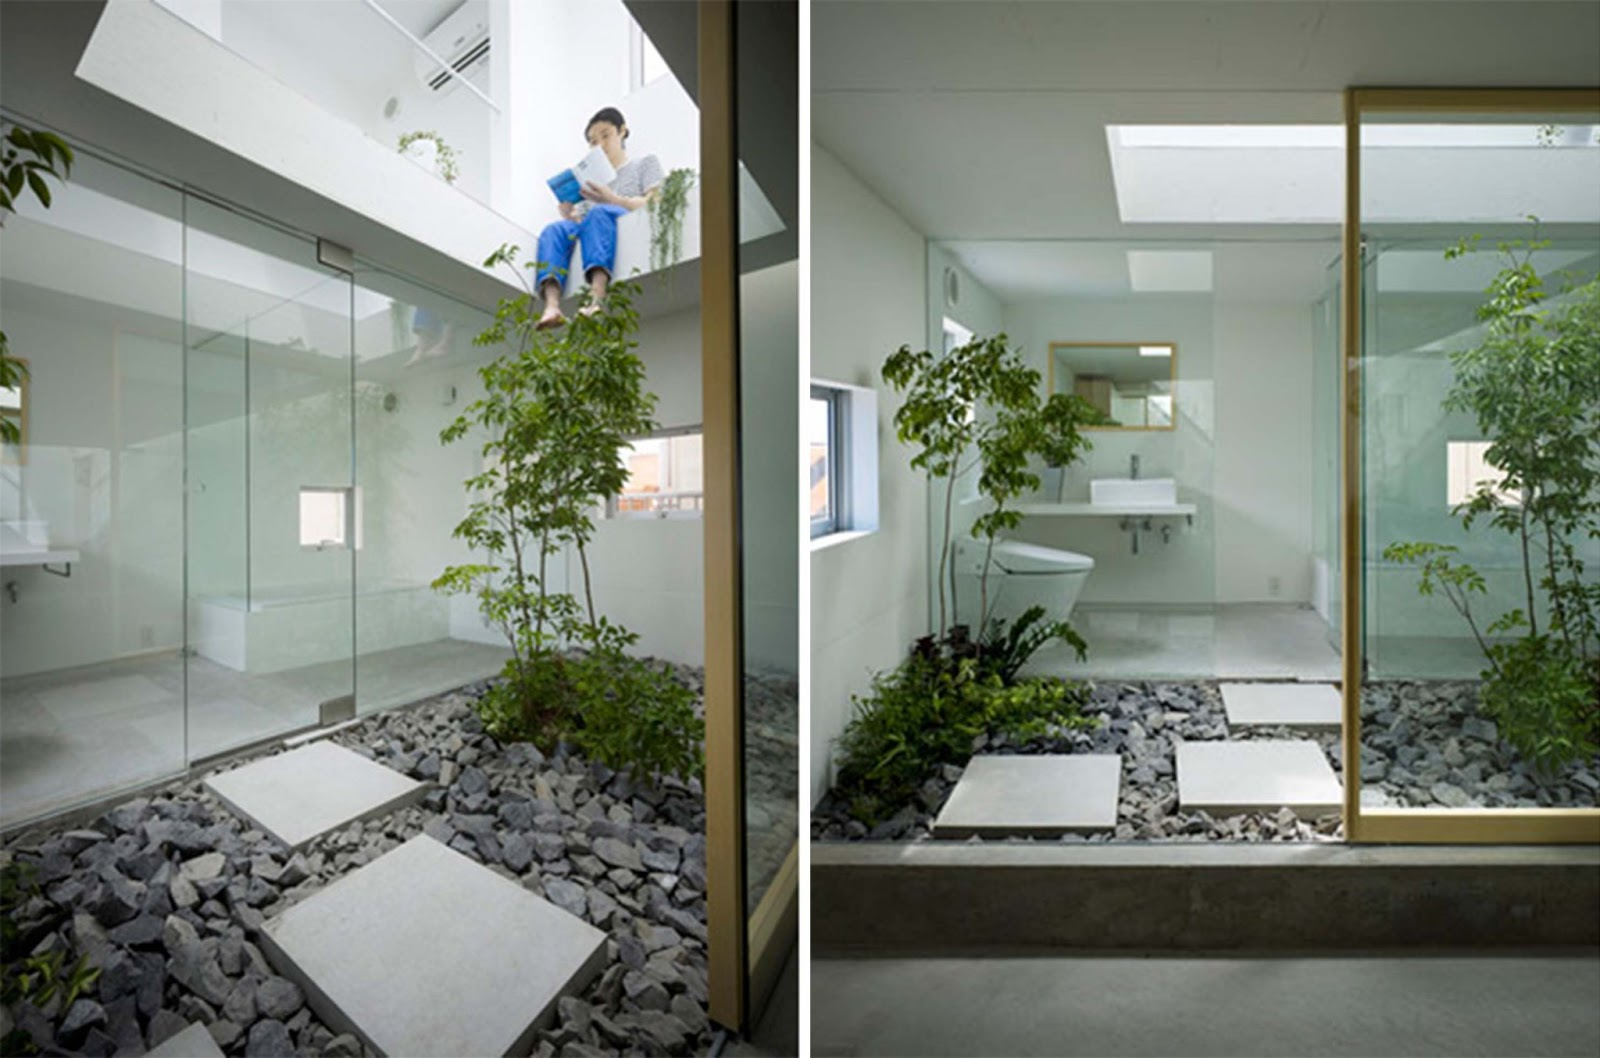 Suppose design casa giardino in moriyama arc art blog by daniele drigo - Giardino in casa ...